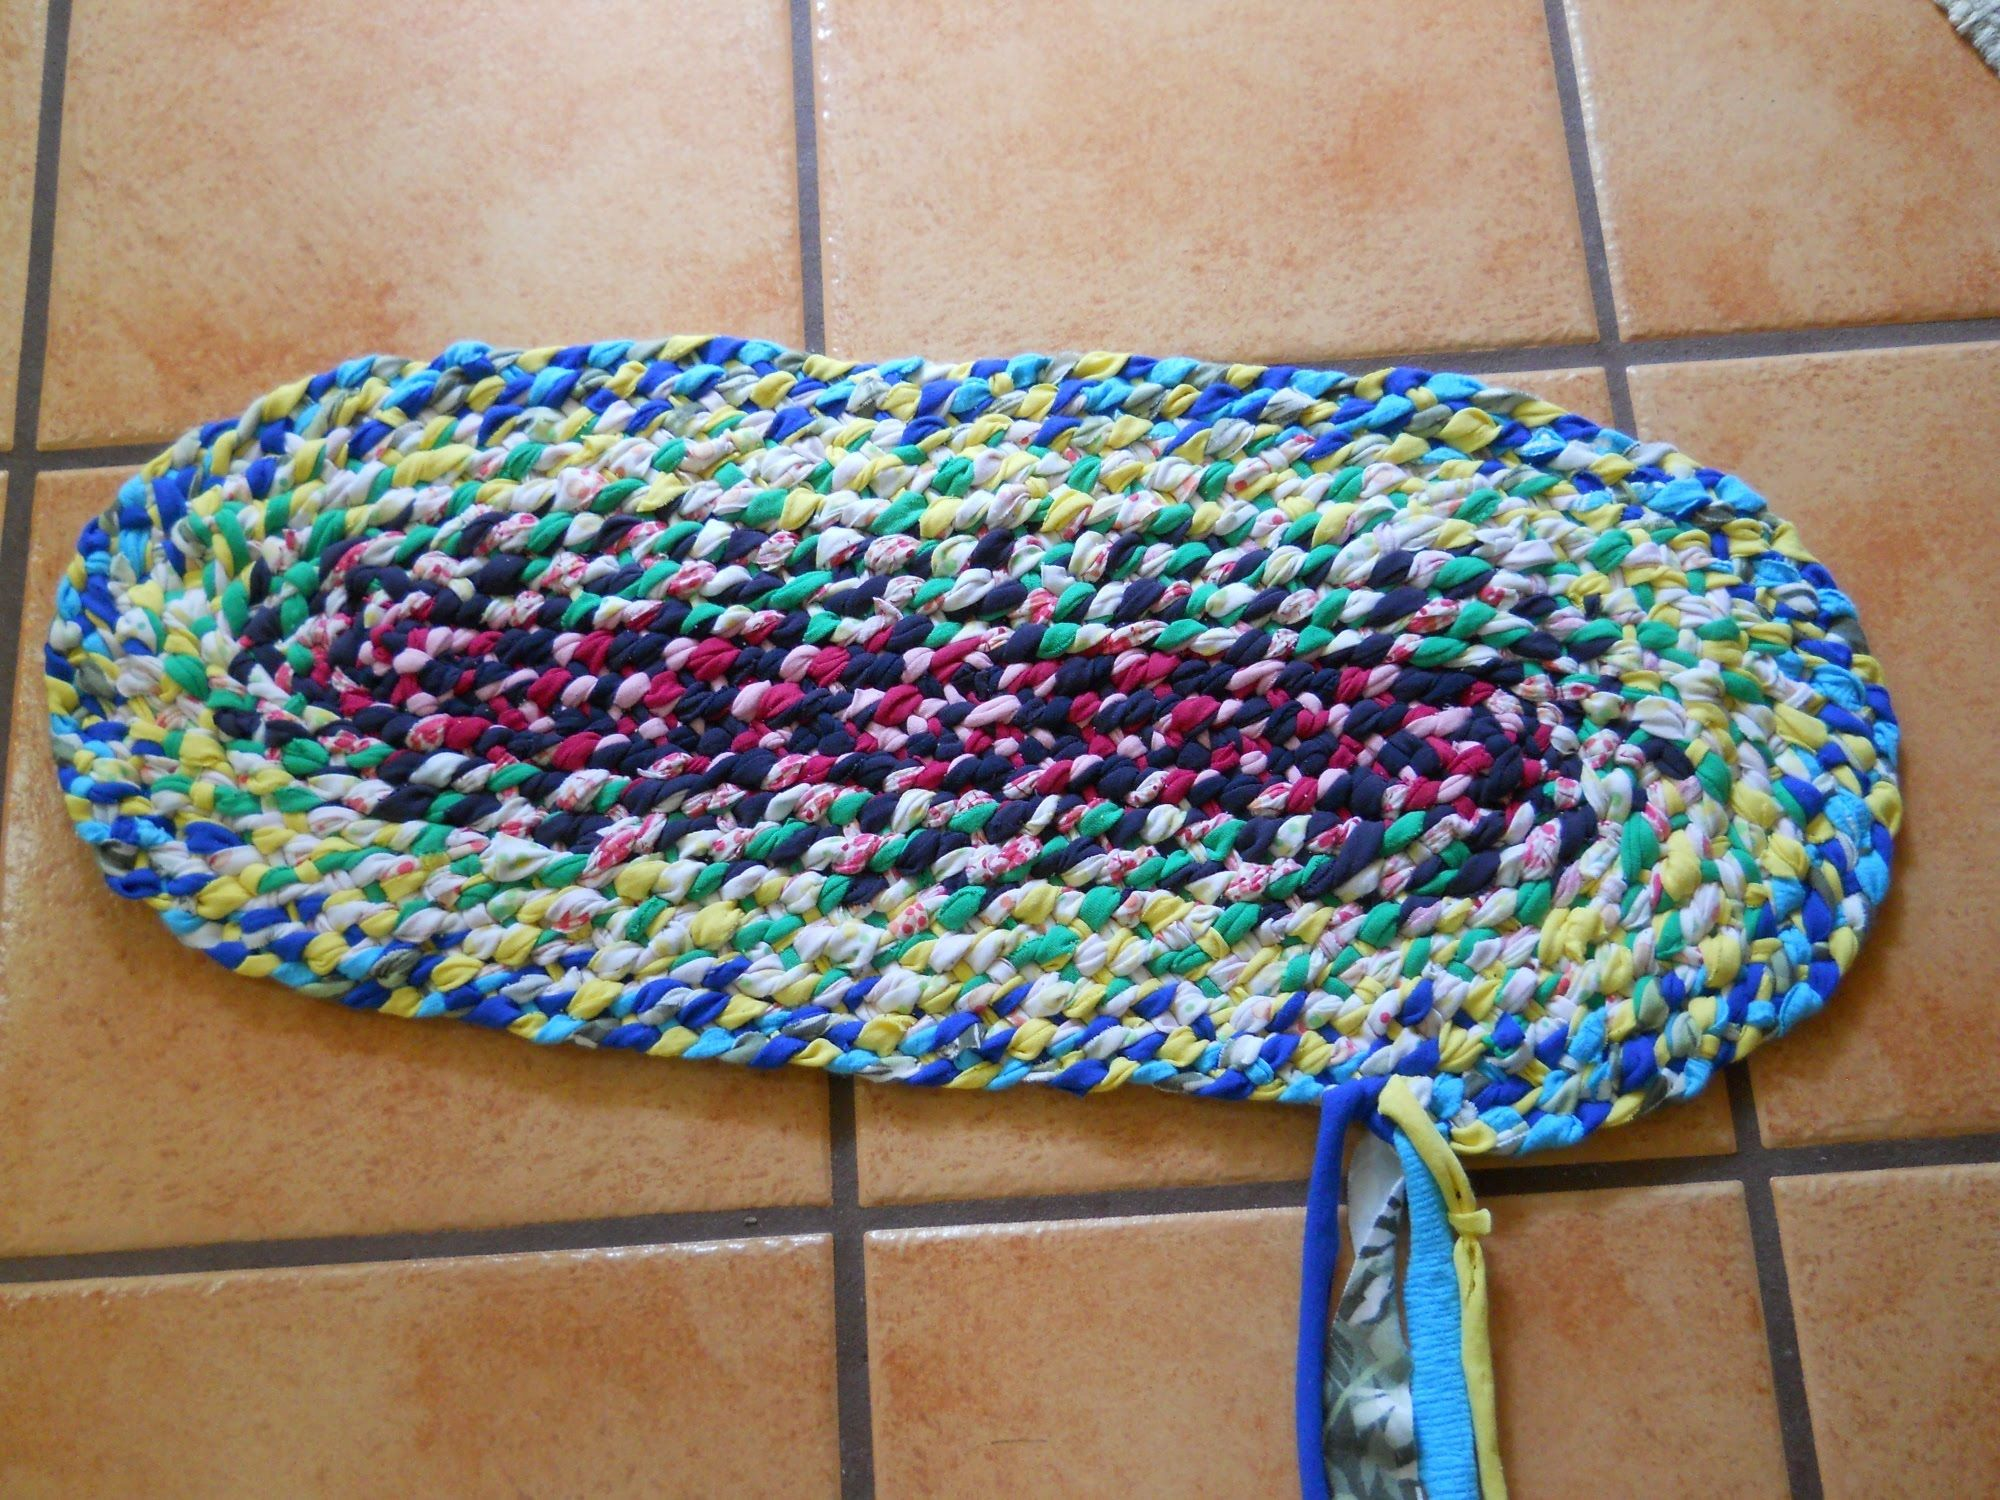 Lost Art Of Braid In Rag Rugs Part 4 Continuing On Adding Lengths To Each Strand